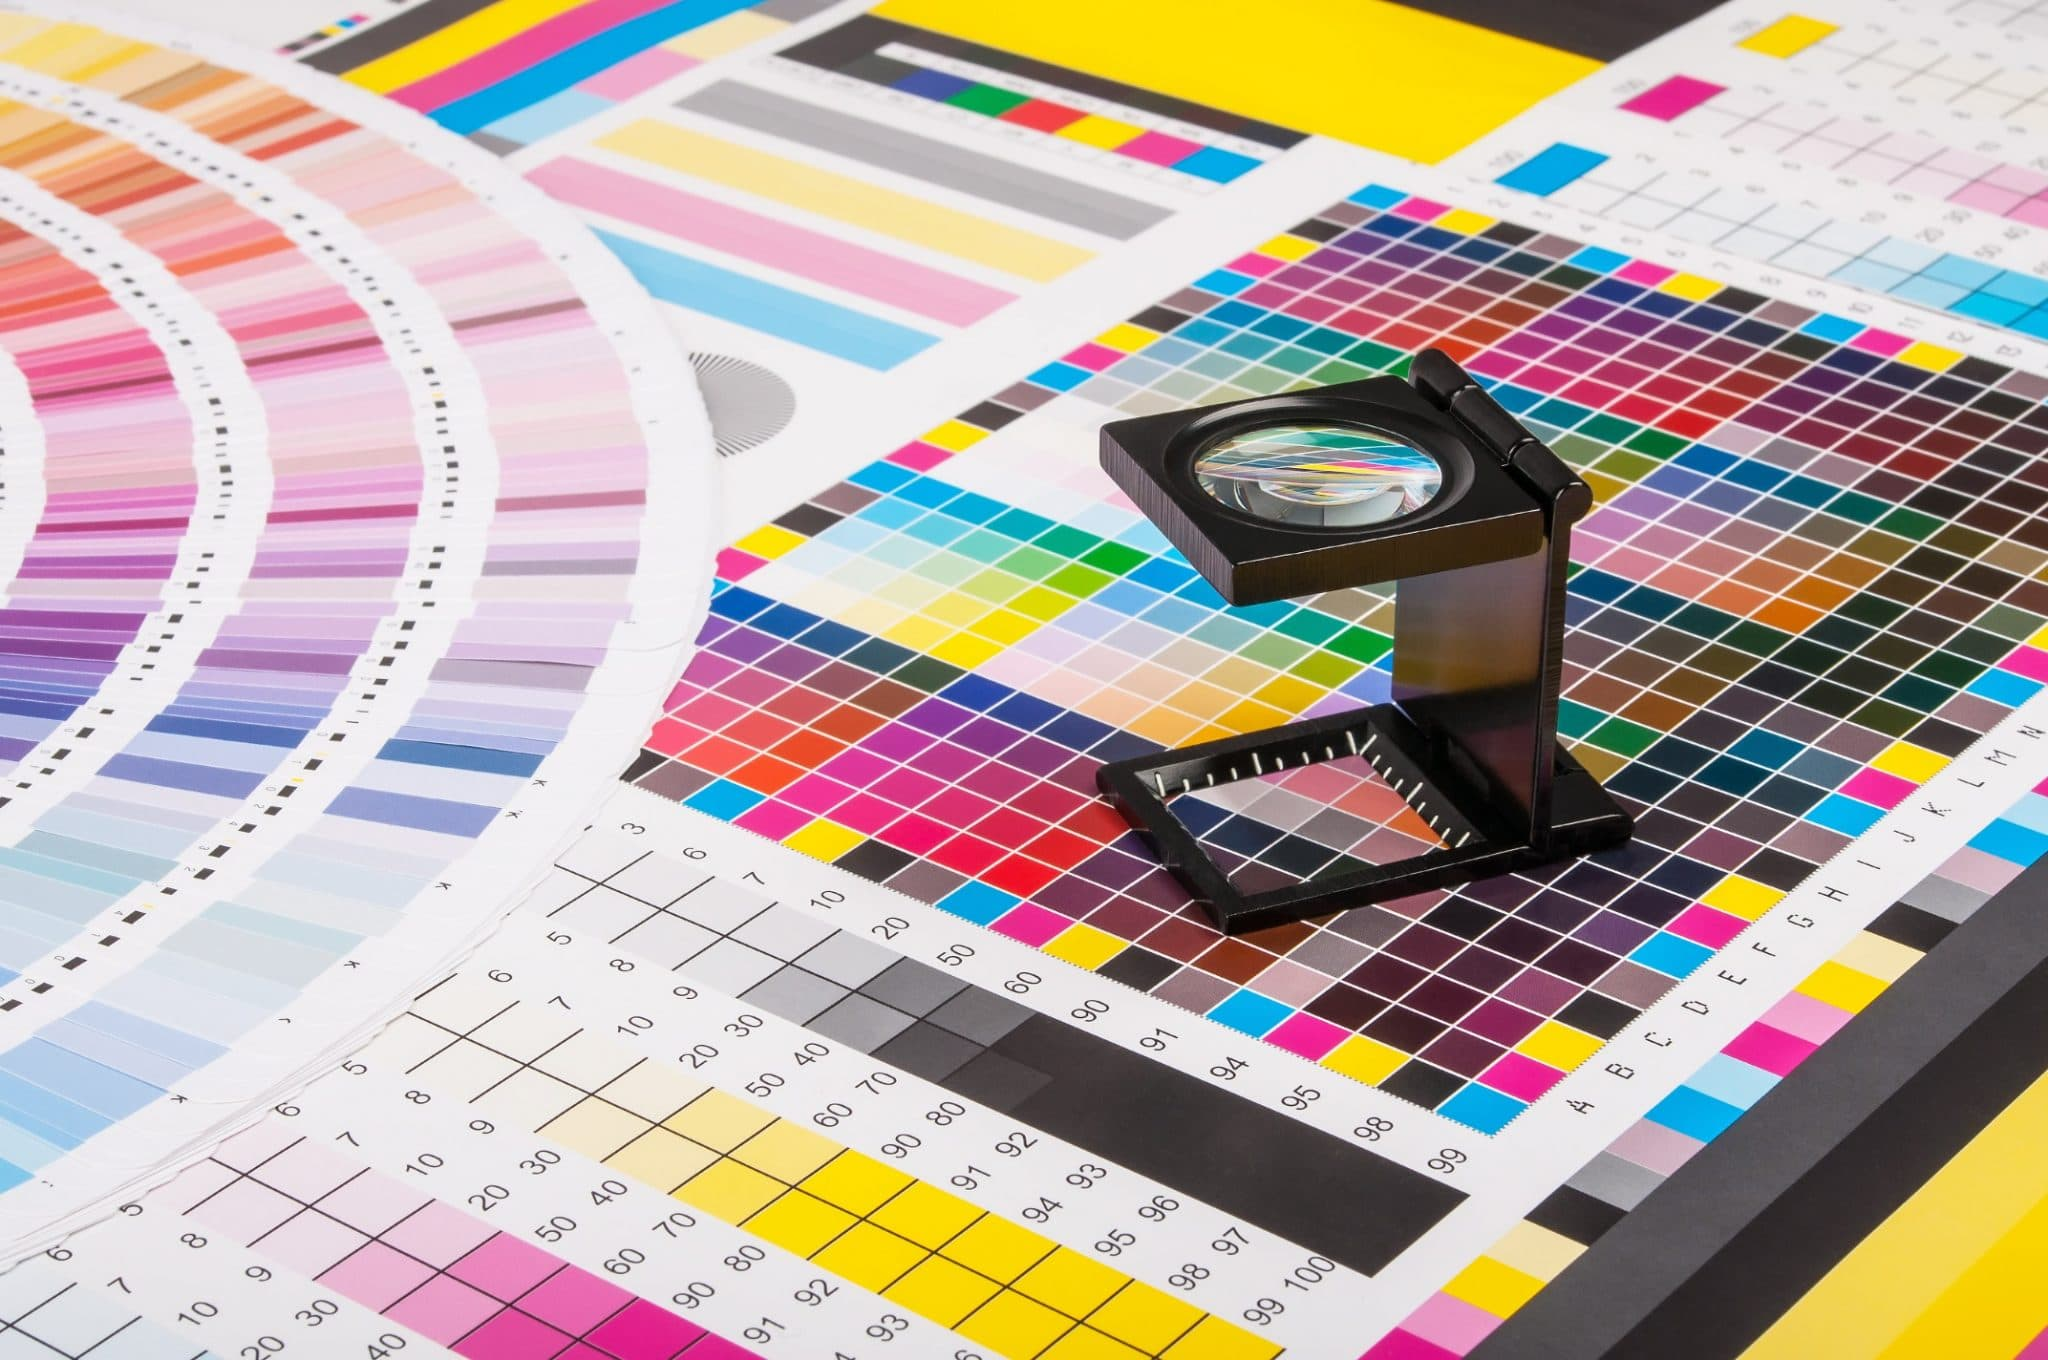 Printing specifications, ink colors